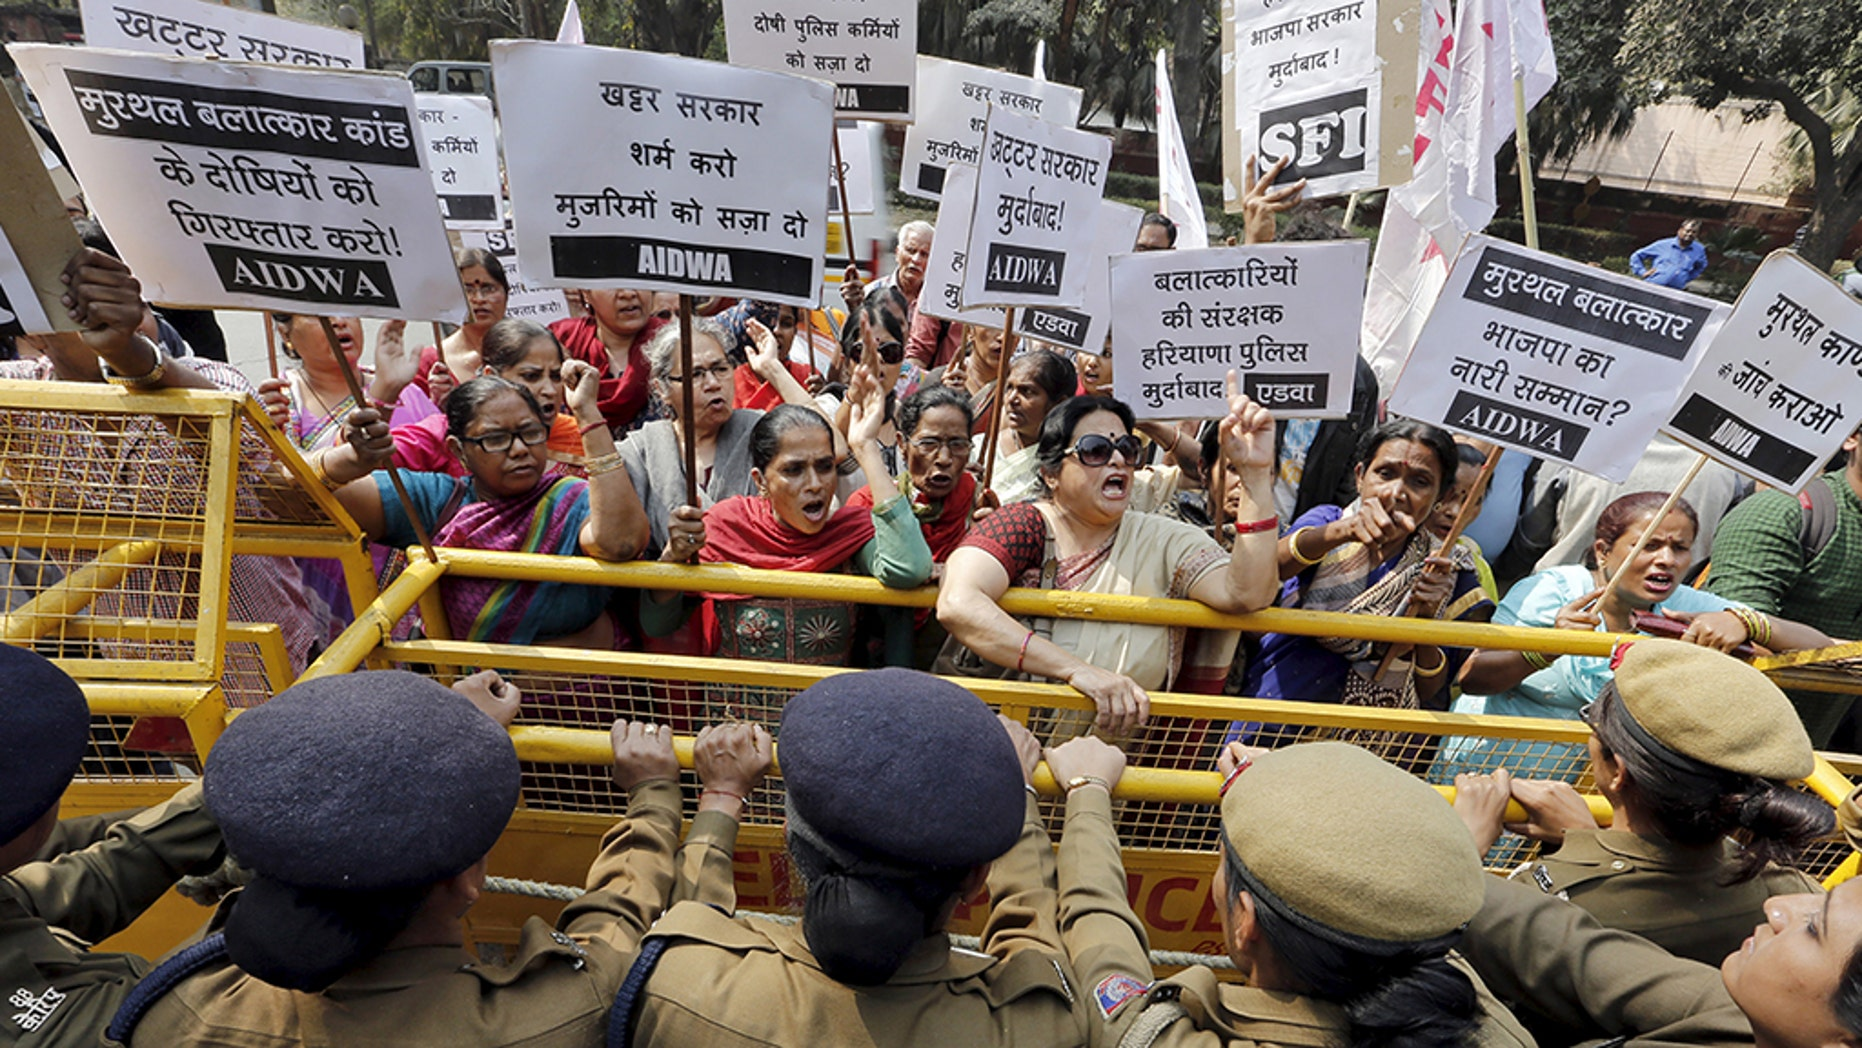 Activists from All India Democratic Women's Association shout slogans behind a police barricade outside the Haryana Bhawan during a protest in New Delhi, India. (Reuters)